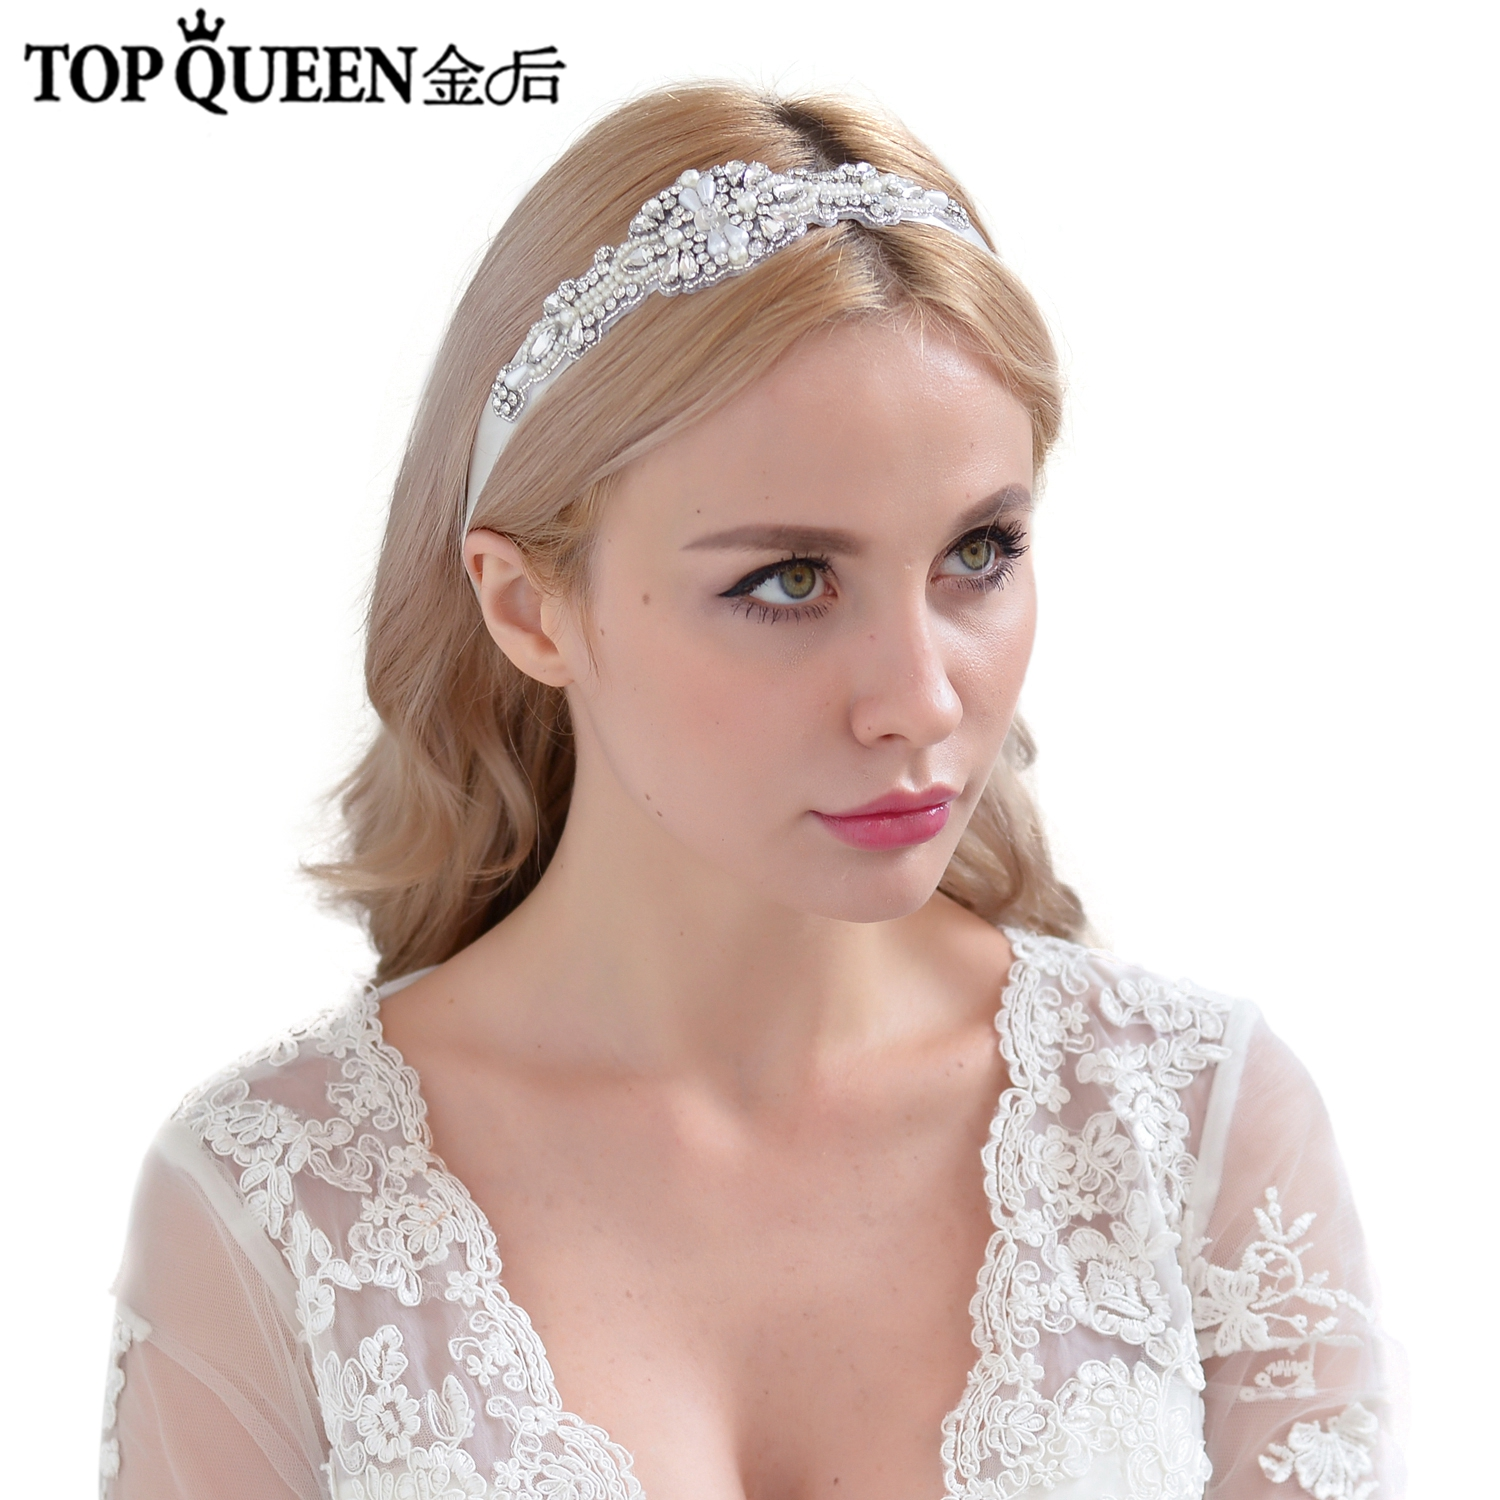 TOPQUEEN  Elegant Bridal Headbands Wedding Hair Accessories With Diamond And Pearl Bridal Headpieces Fast Shipping Stock H29